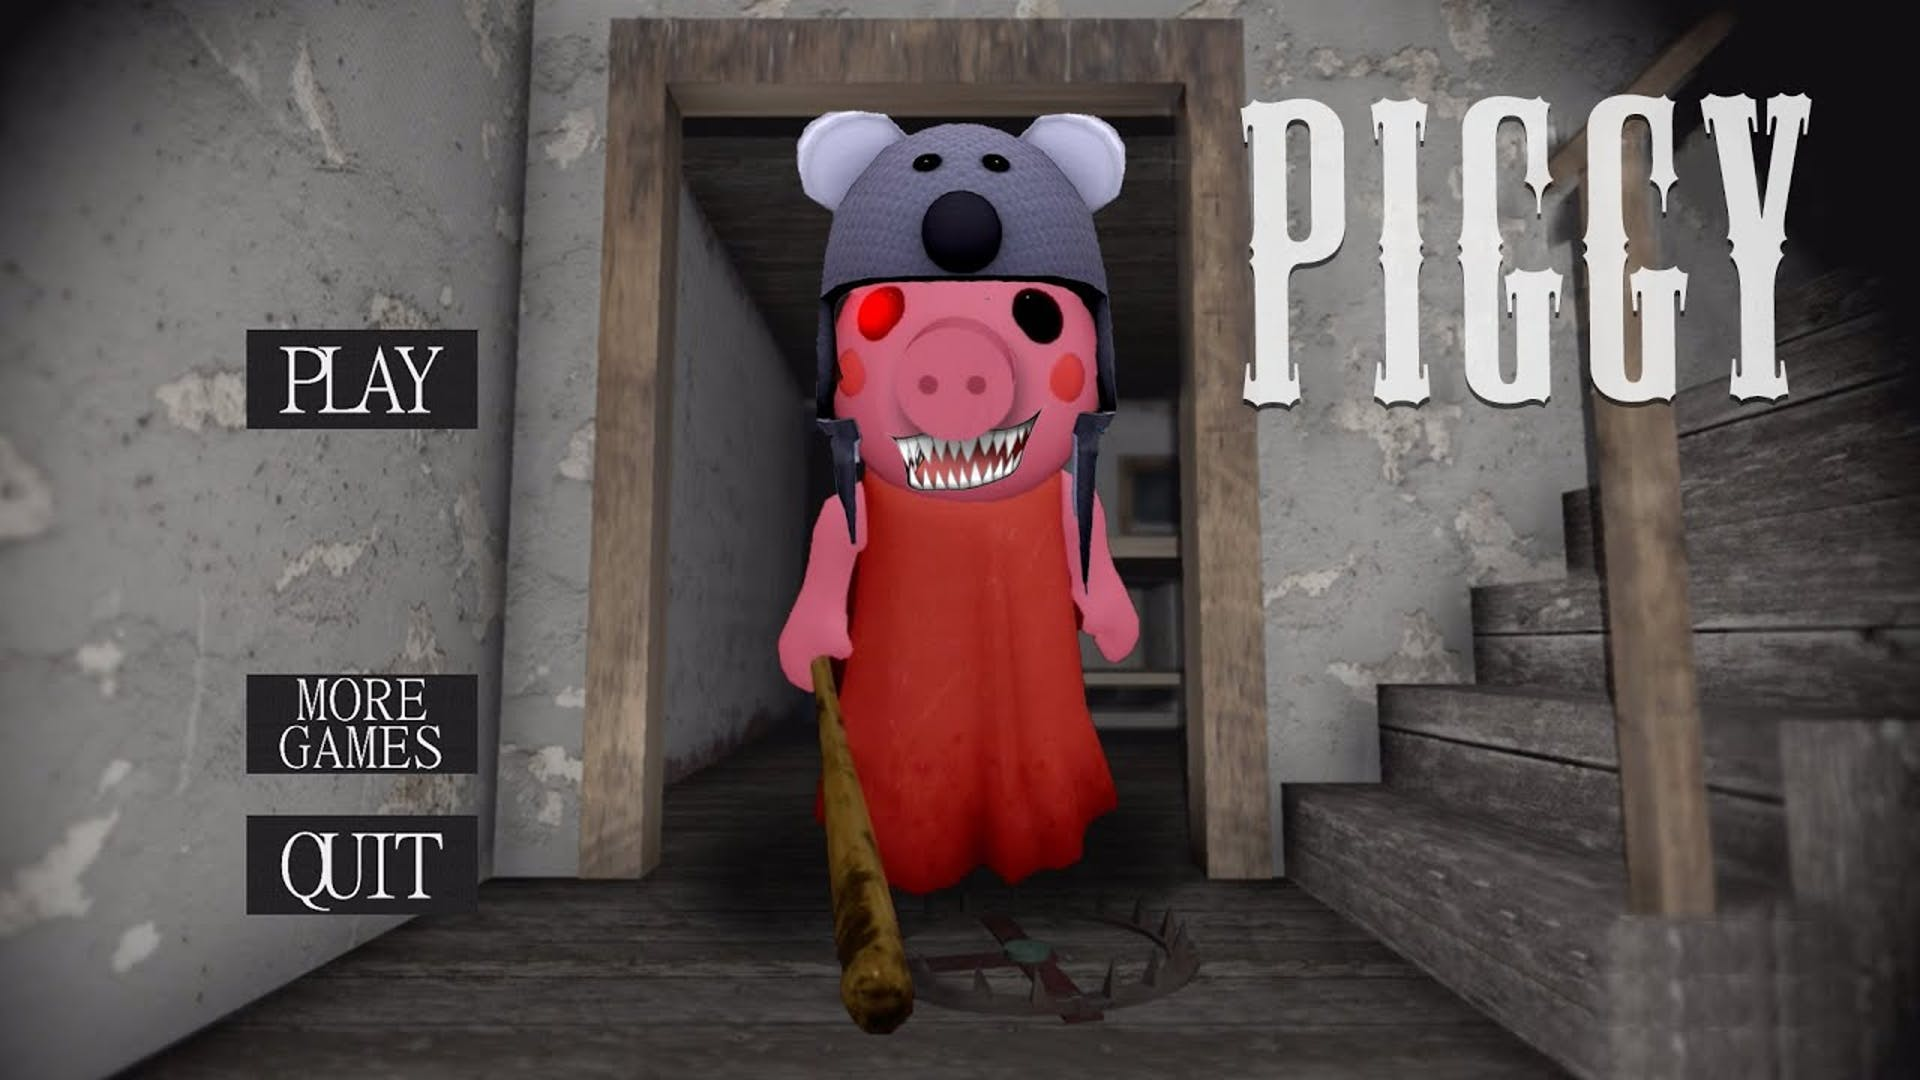 Roblox Minitoon Face Piggy Chapter 8 New Release Date Gameplay And Trailer Details